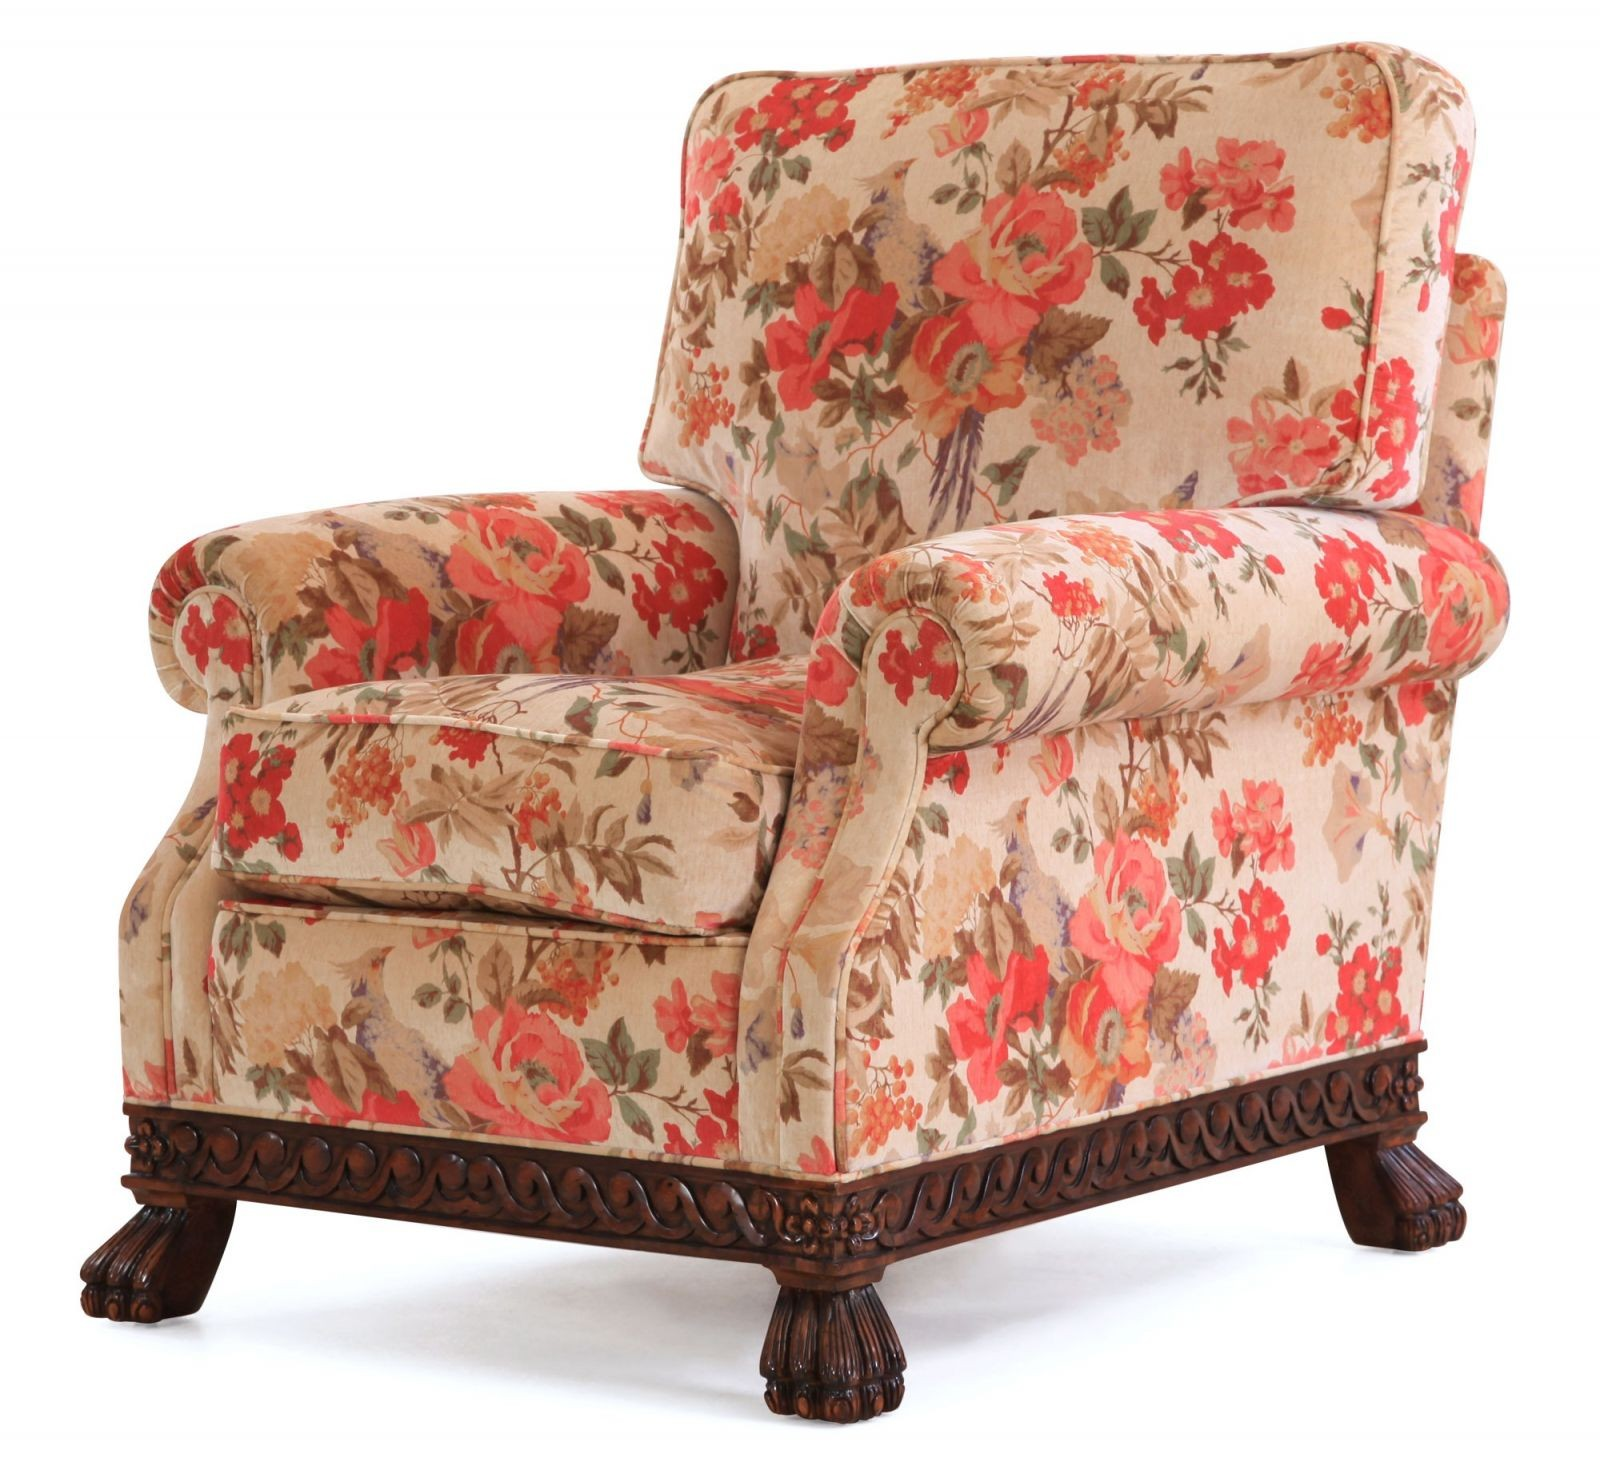 Dartington chair in Linwood Dallaway